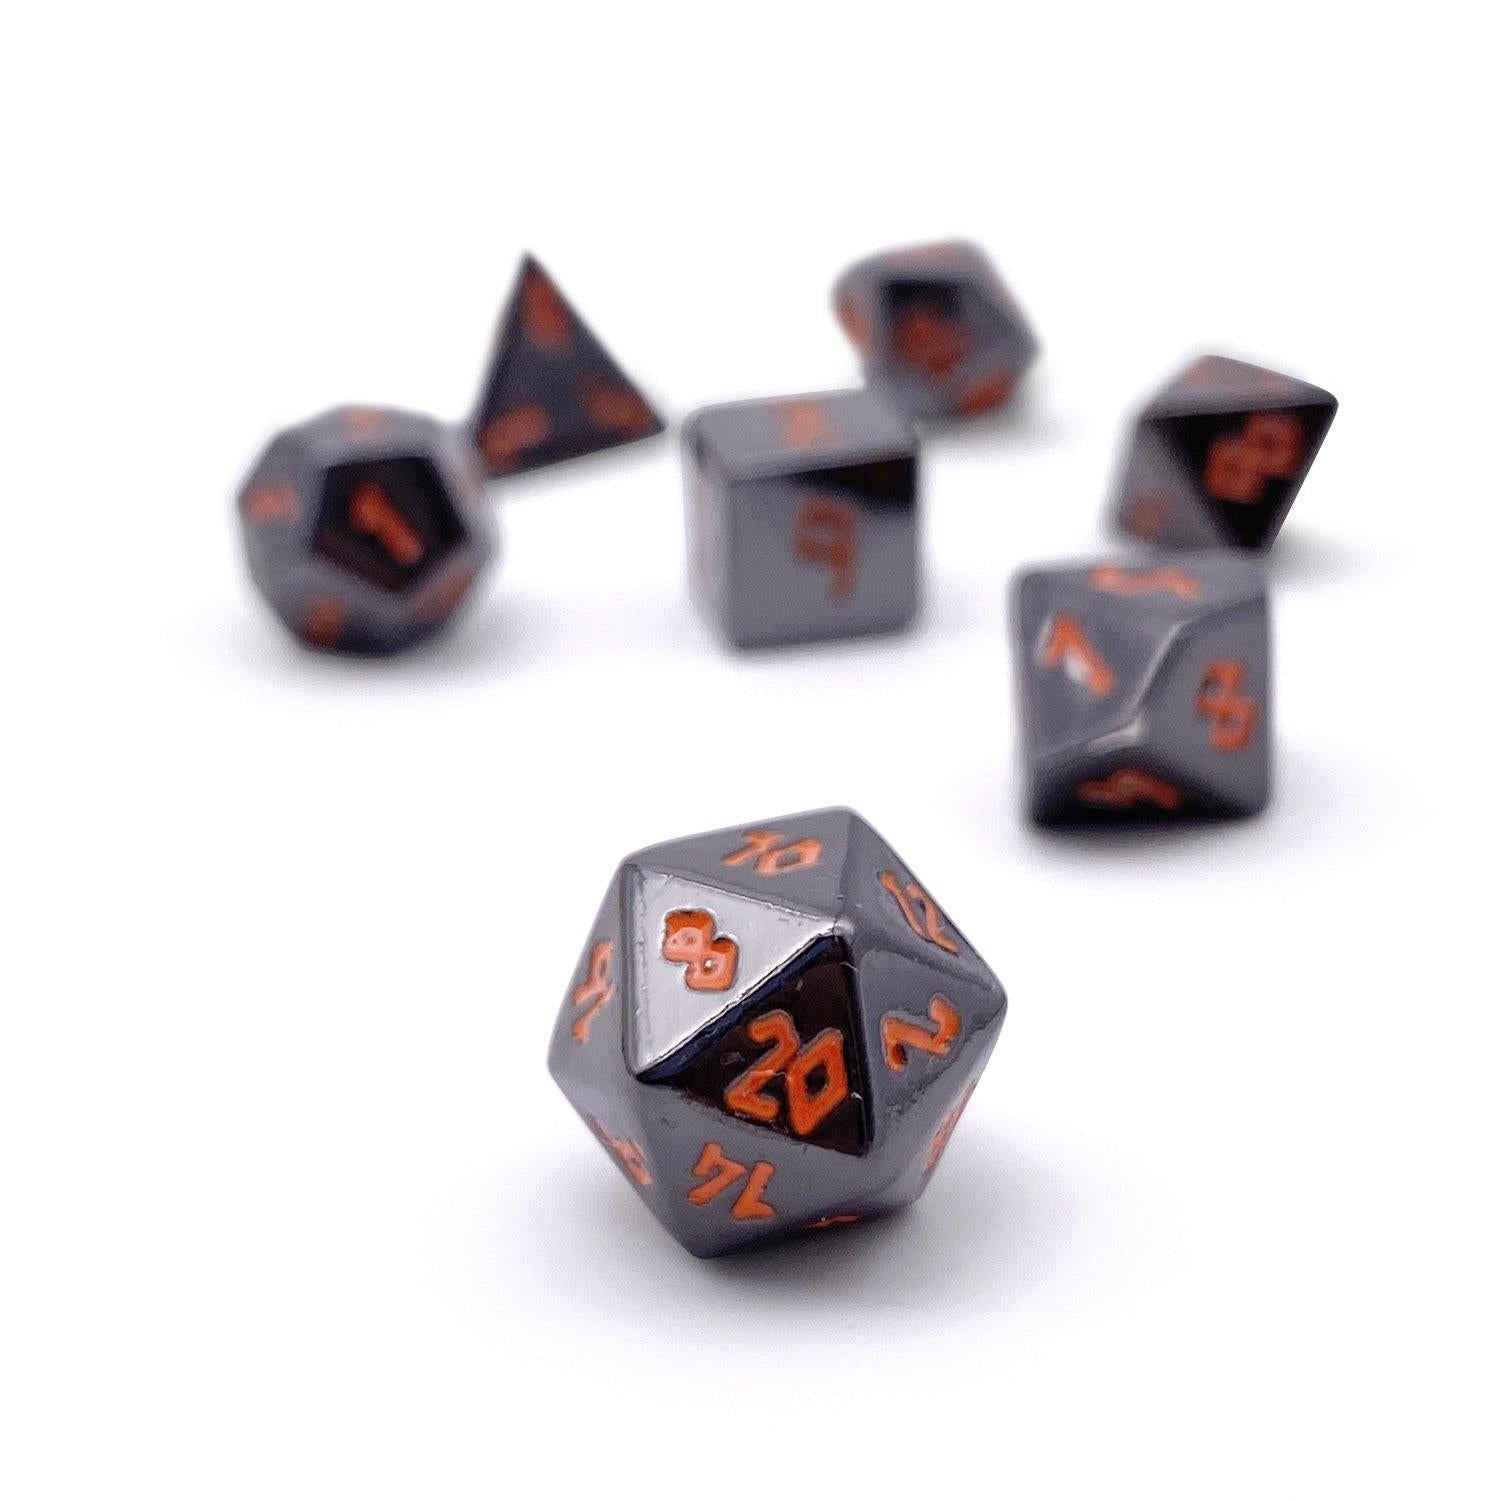 Black Lava Pebble ™ Dice - 10mm Alloy Mini Polyhedral Dice Set